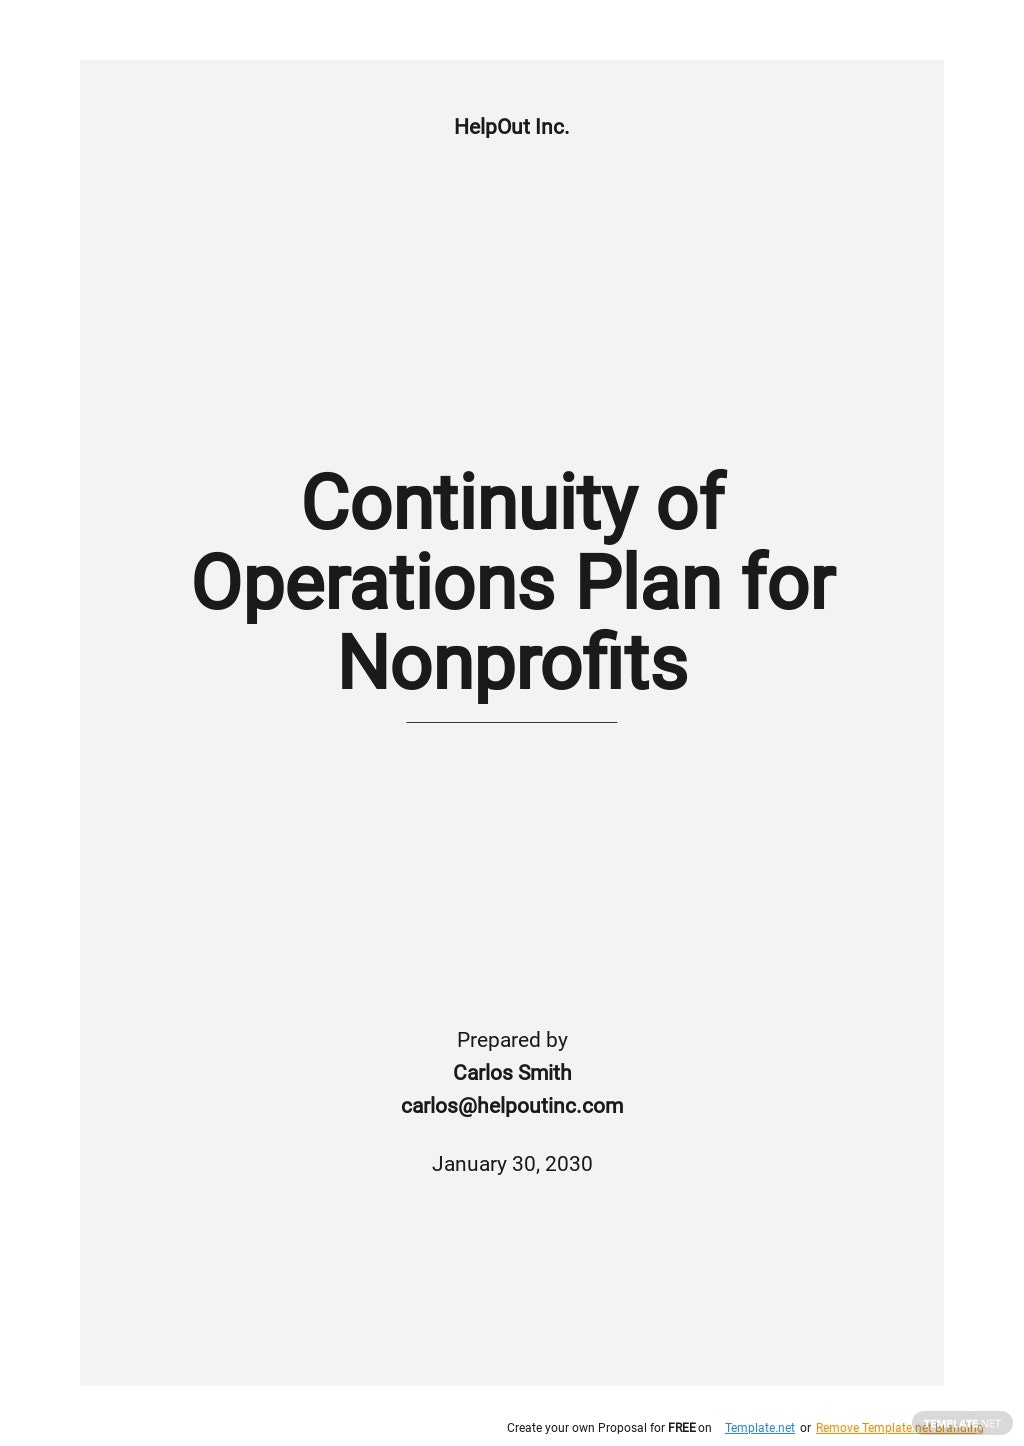 Continuity of Operations Plan for Nonprofits Template.jpe